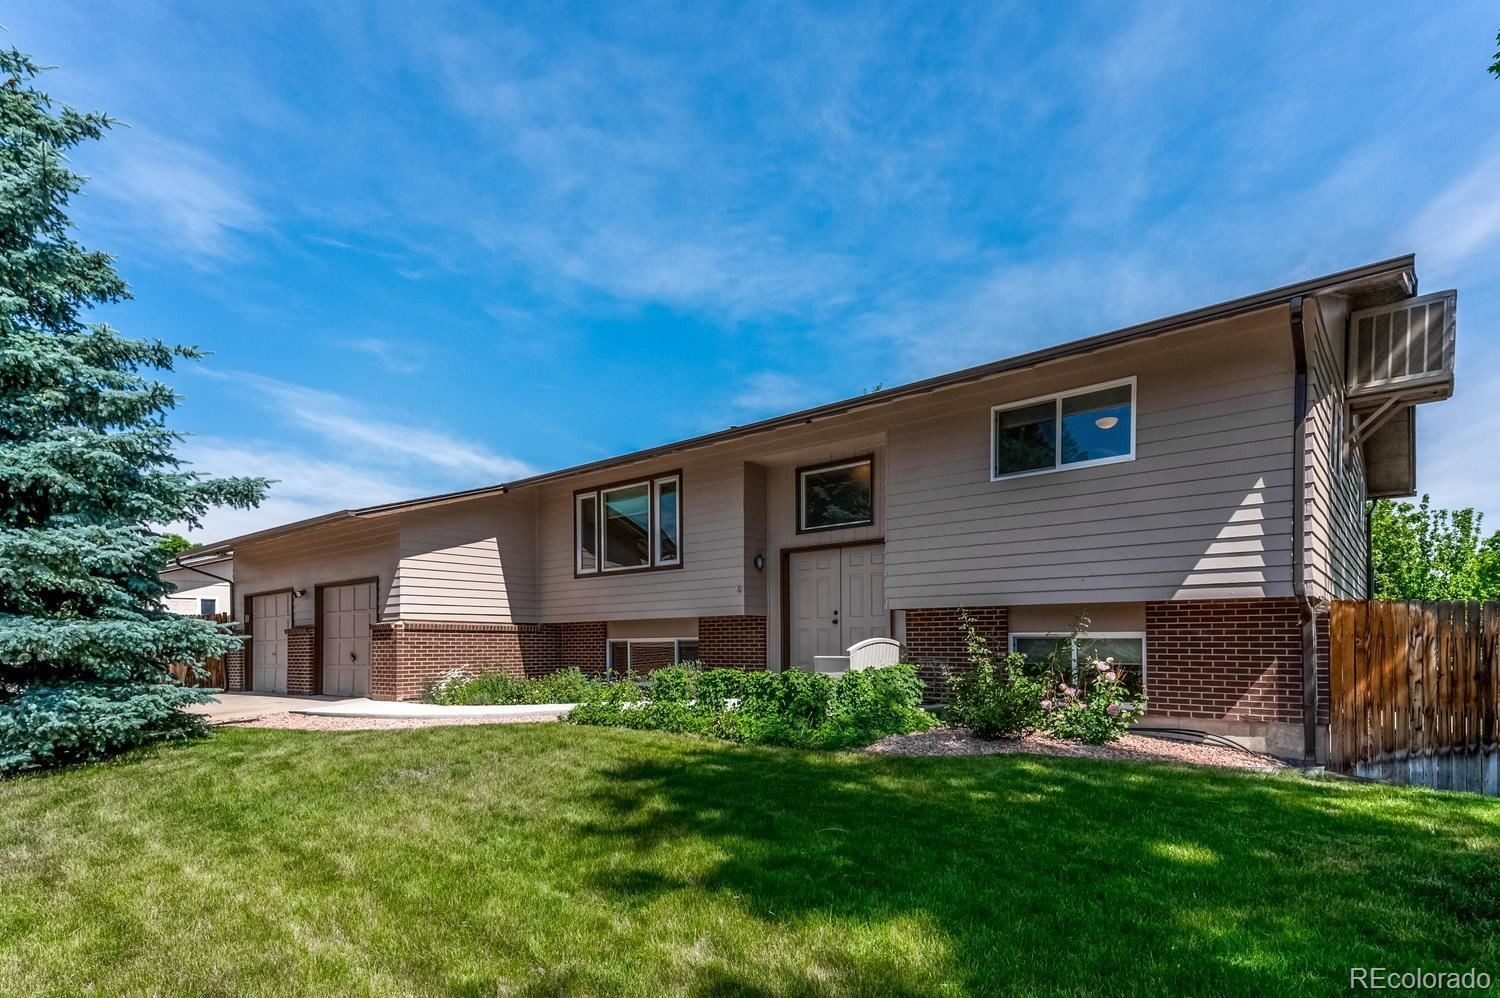 17009 W 11th Place, Golden, CO 80401 - #: 4138647